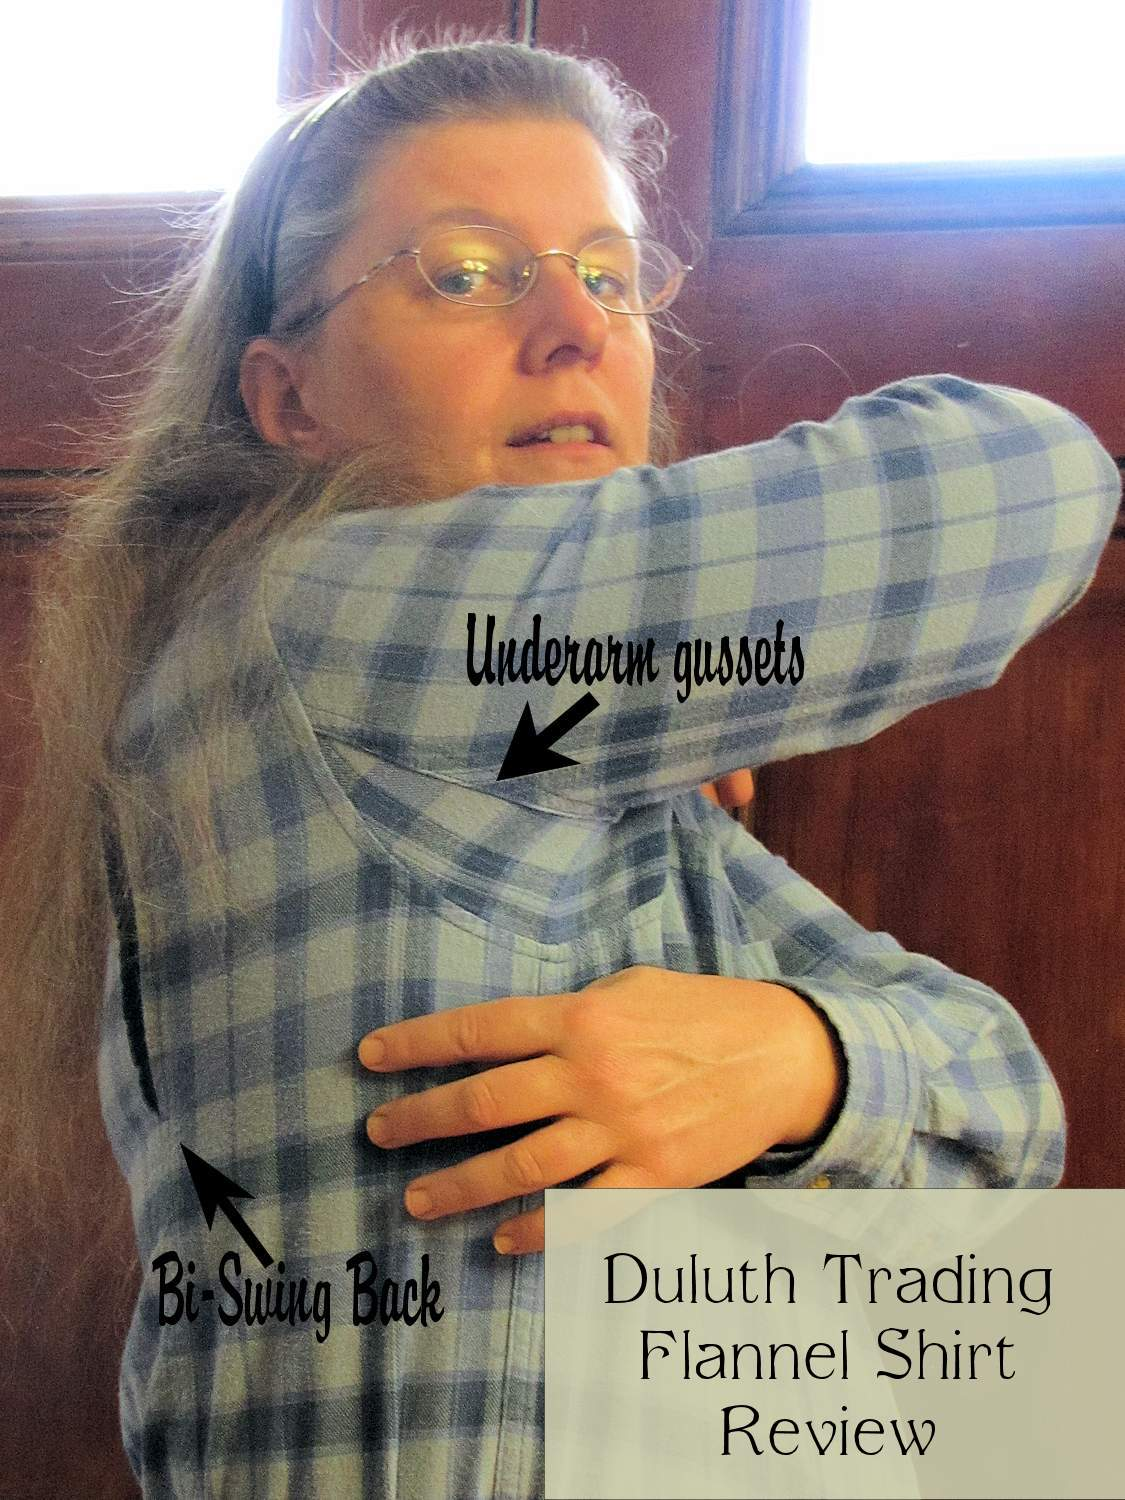 Find duluth trading from a vast selection of Shirts. Get great deals on eBay!